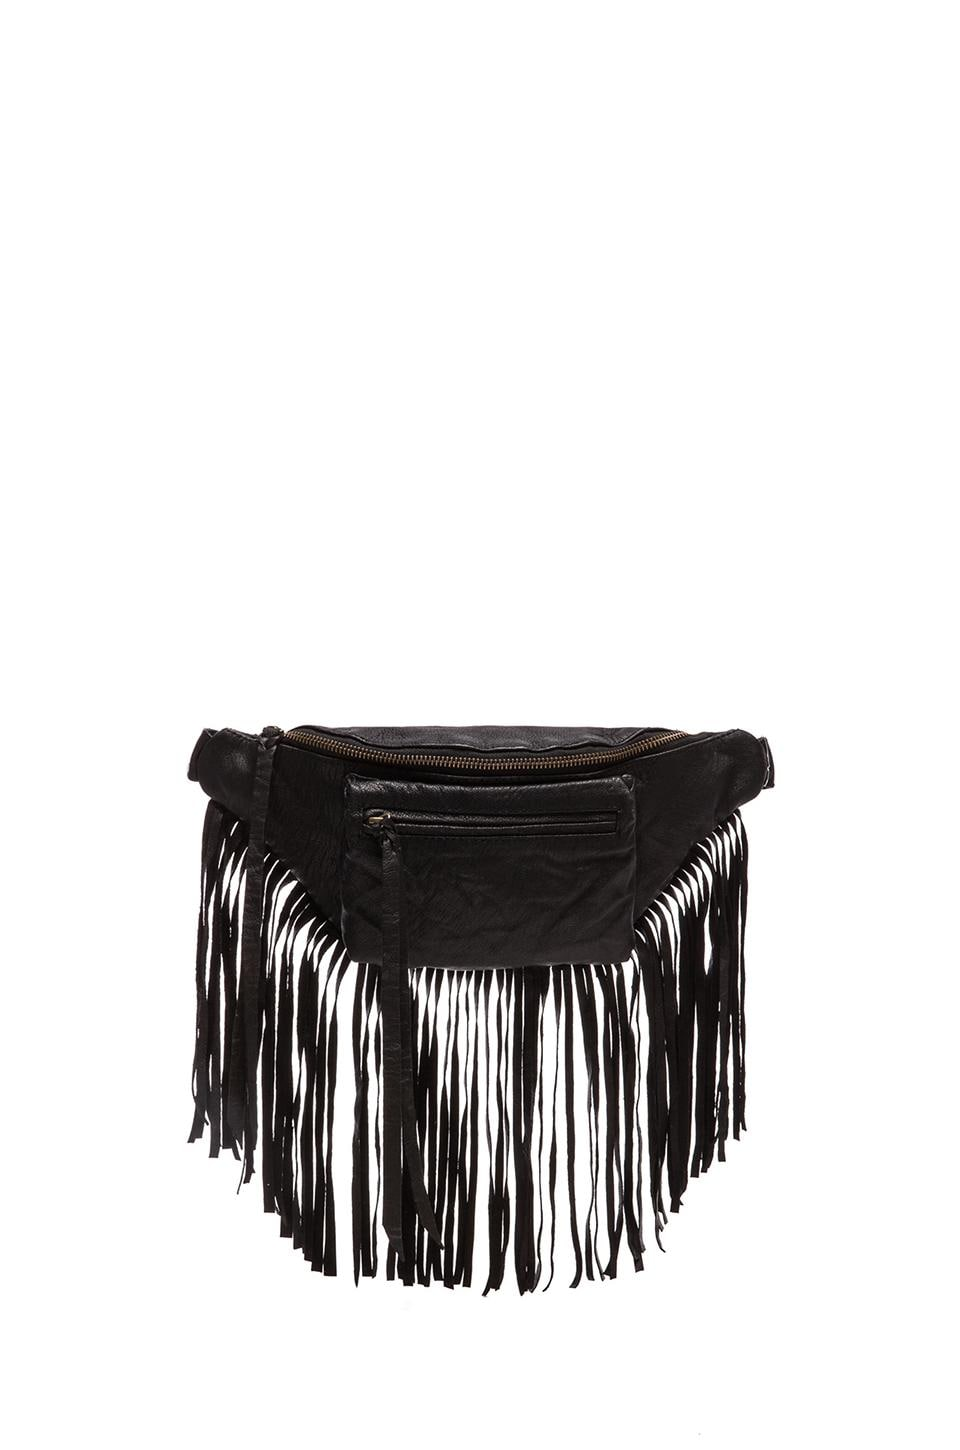 Cleobella Rebel Fanny Pack in Black